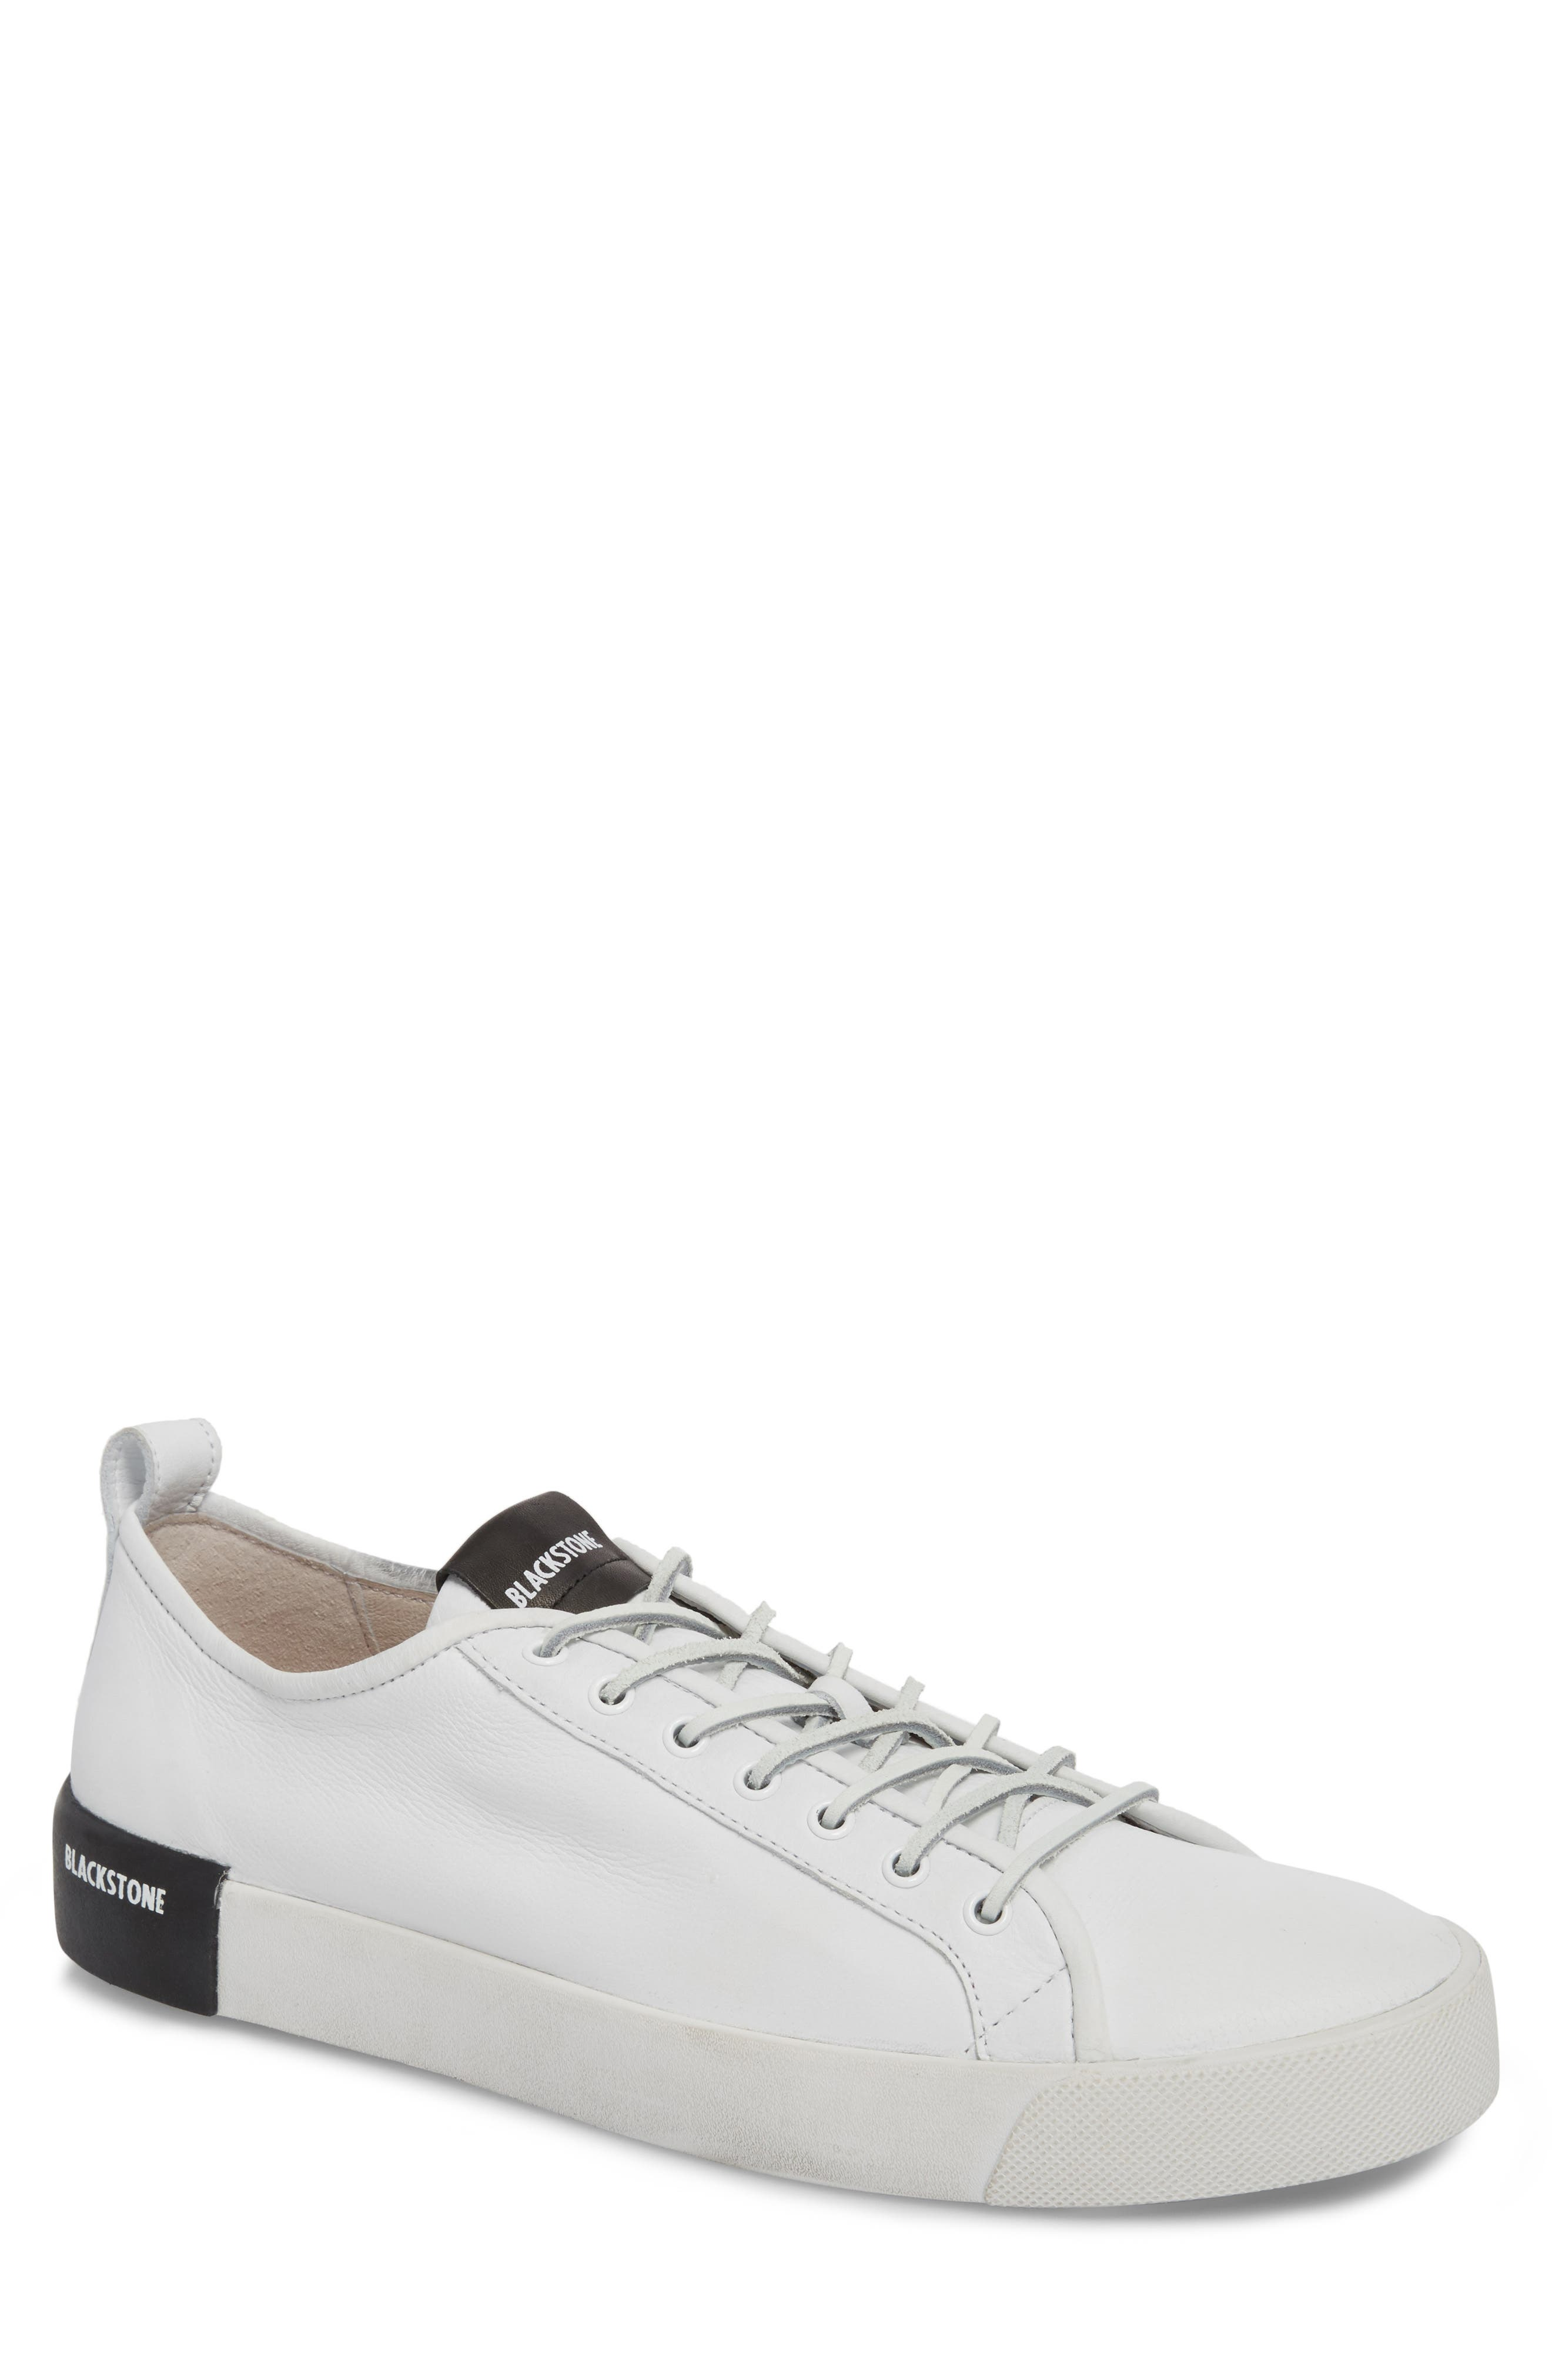 PM66 Low Top Sneaker,                             Main thumbnail 1, color,                             White Leather